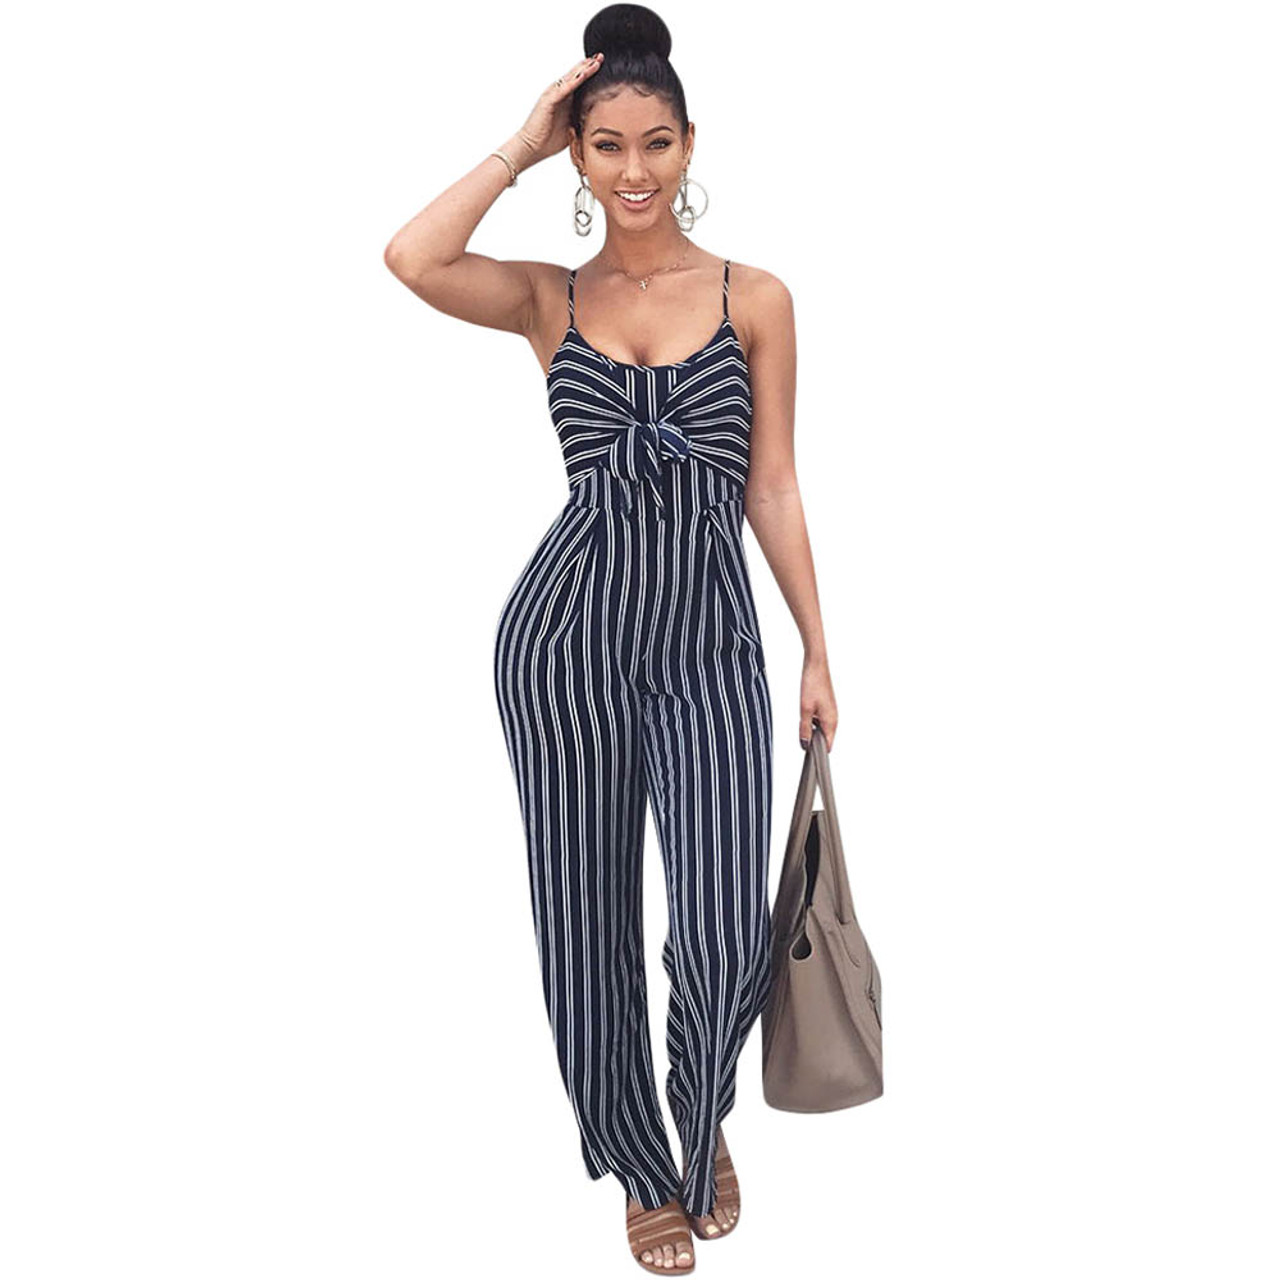 Elegant Striped Sexy Spaghetti Strap Rompers Womens Jumpsuit Sleeveless  BacklessBow Casual Wide legs Jumpsuits Leotard Overalls - OnshopDeals.Com 693539011